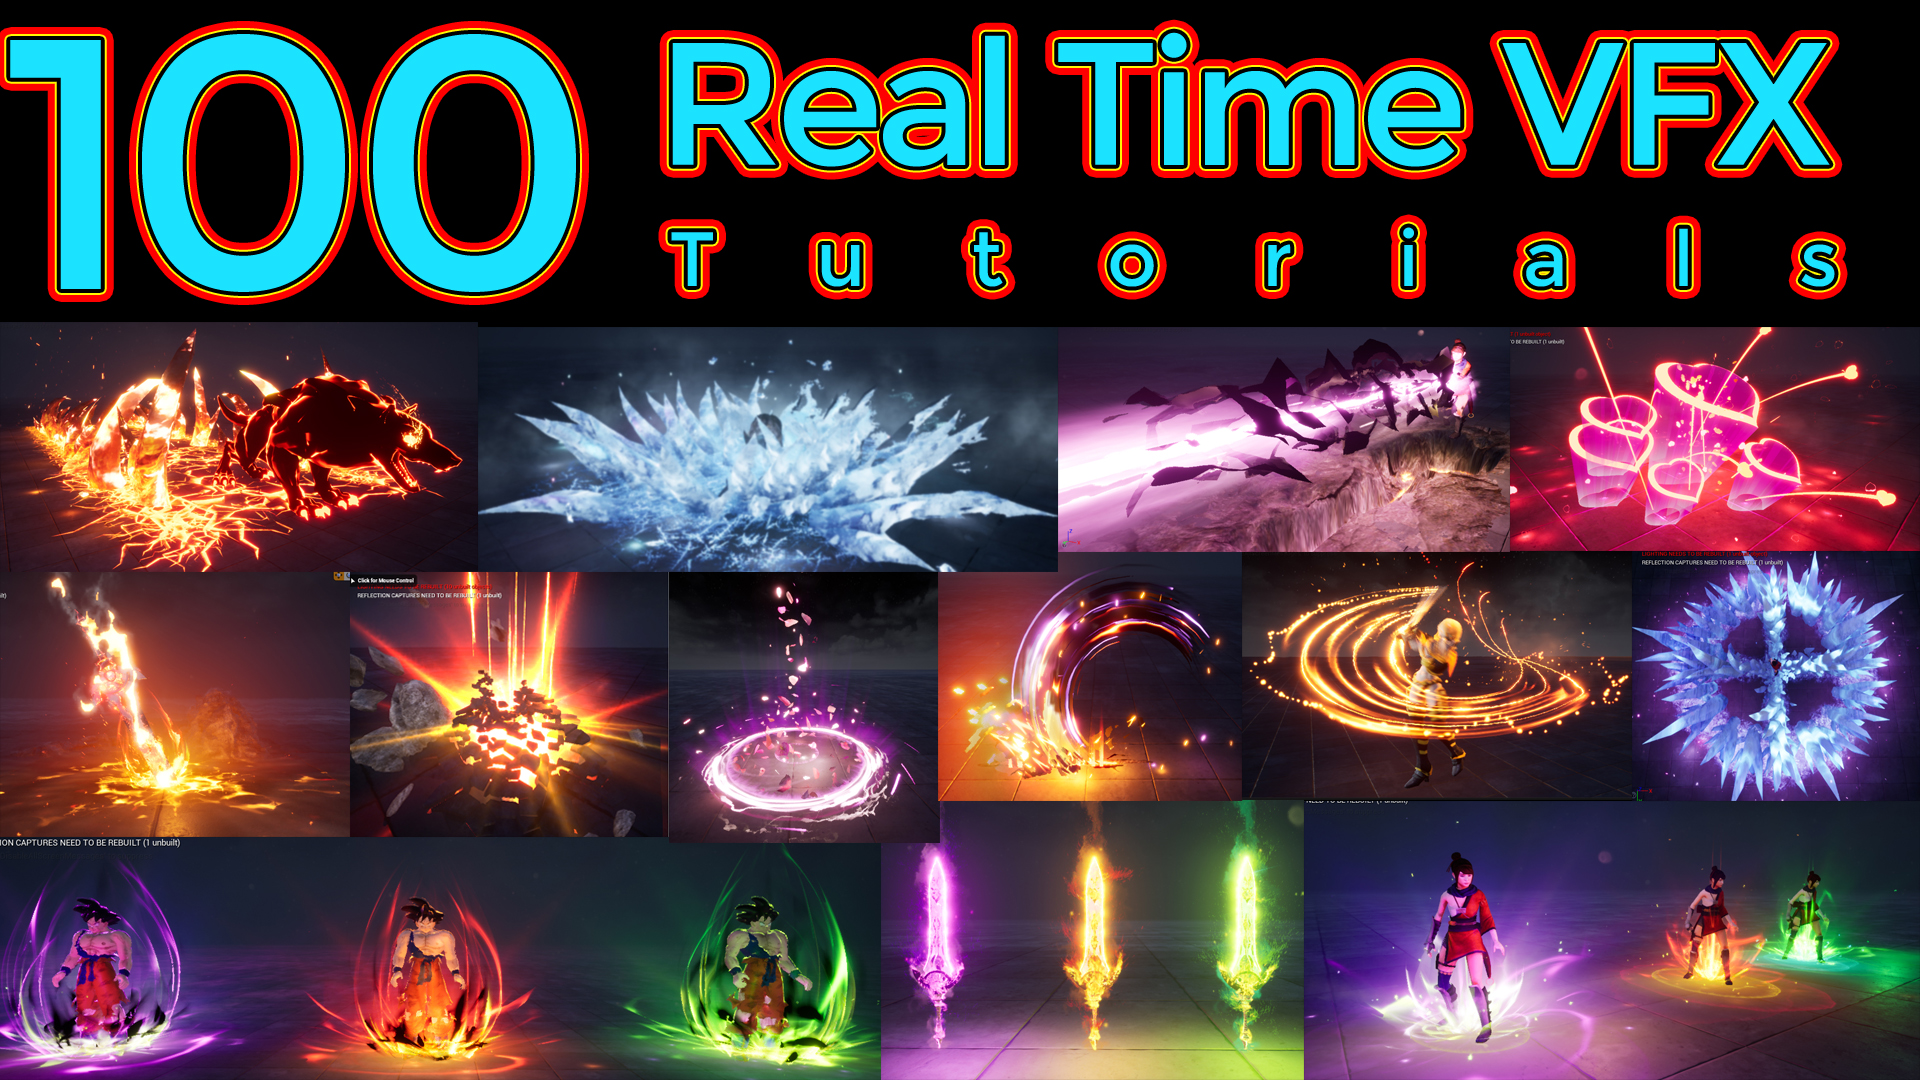 100 Real Time VFX Tutorials | CGHOW